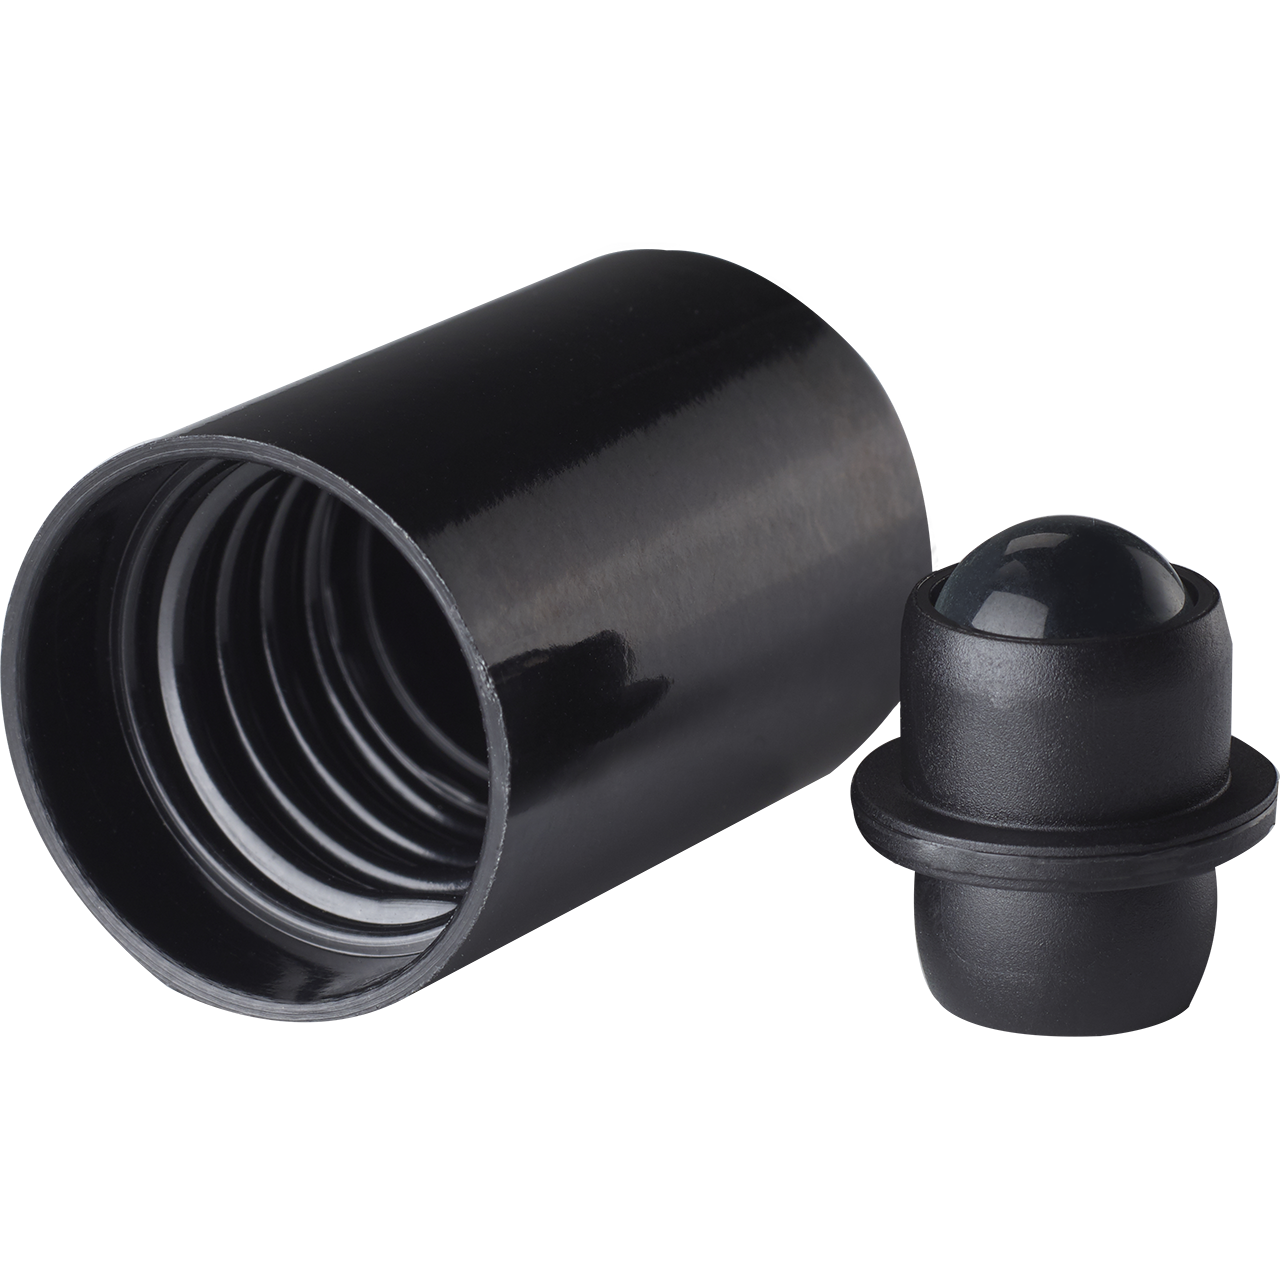 Roll-on closure DIN18, Urea, black fitment with polished glass ball, black cap